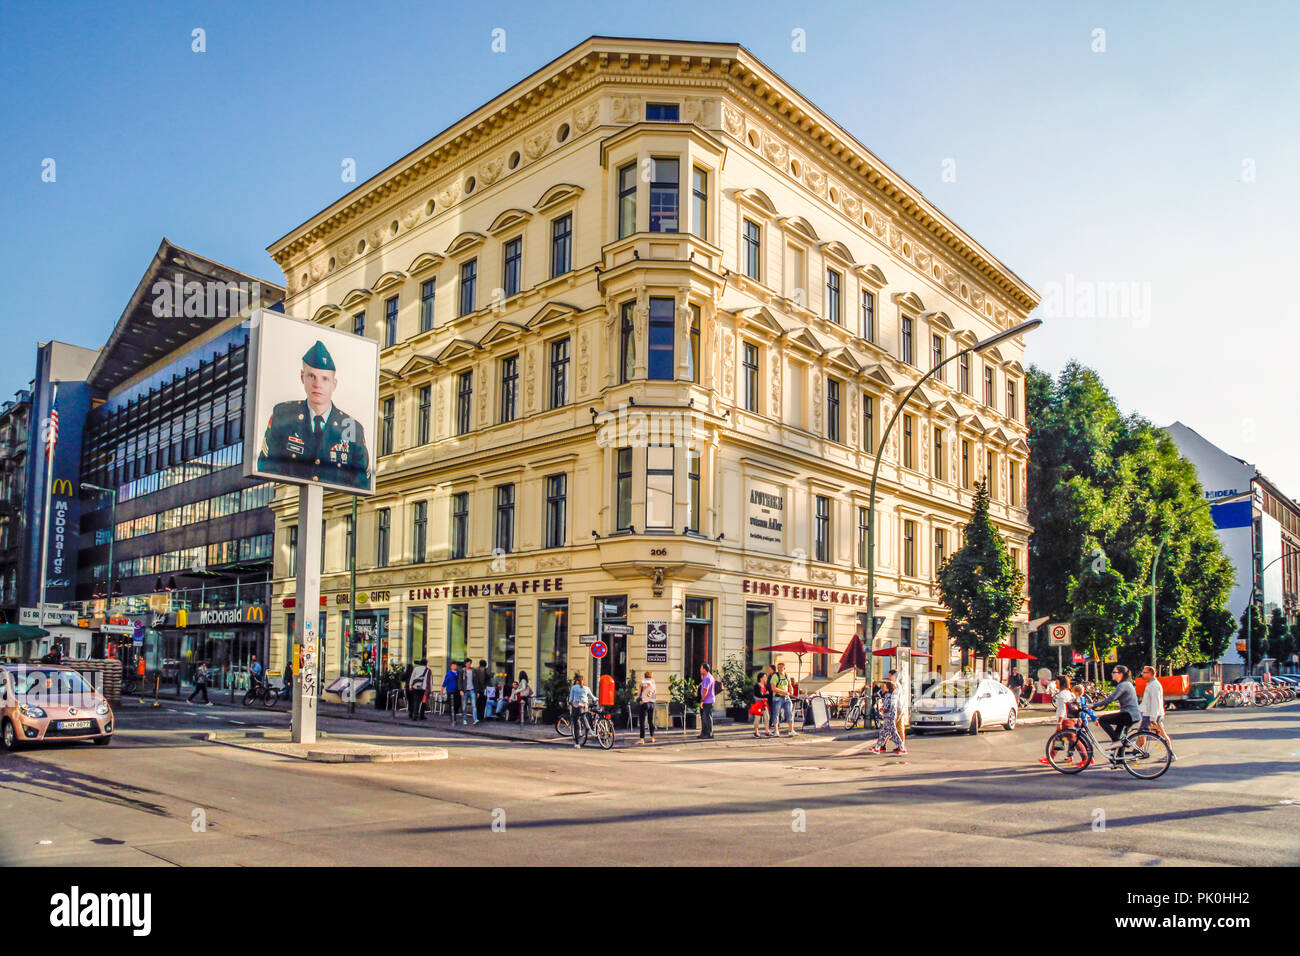 Zimmer In Berlin Near Checkpoint Charlie The Einstein Cafe On The Corner Of